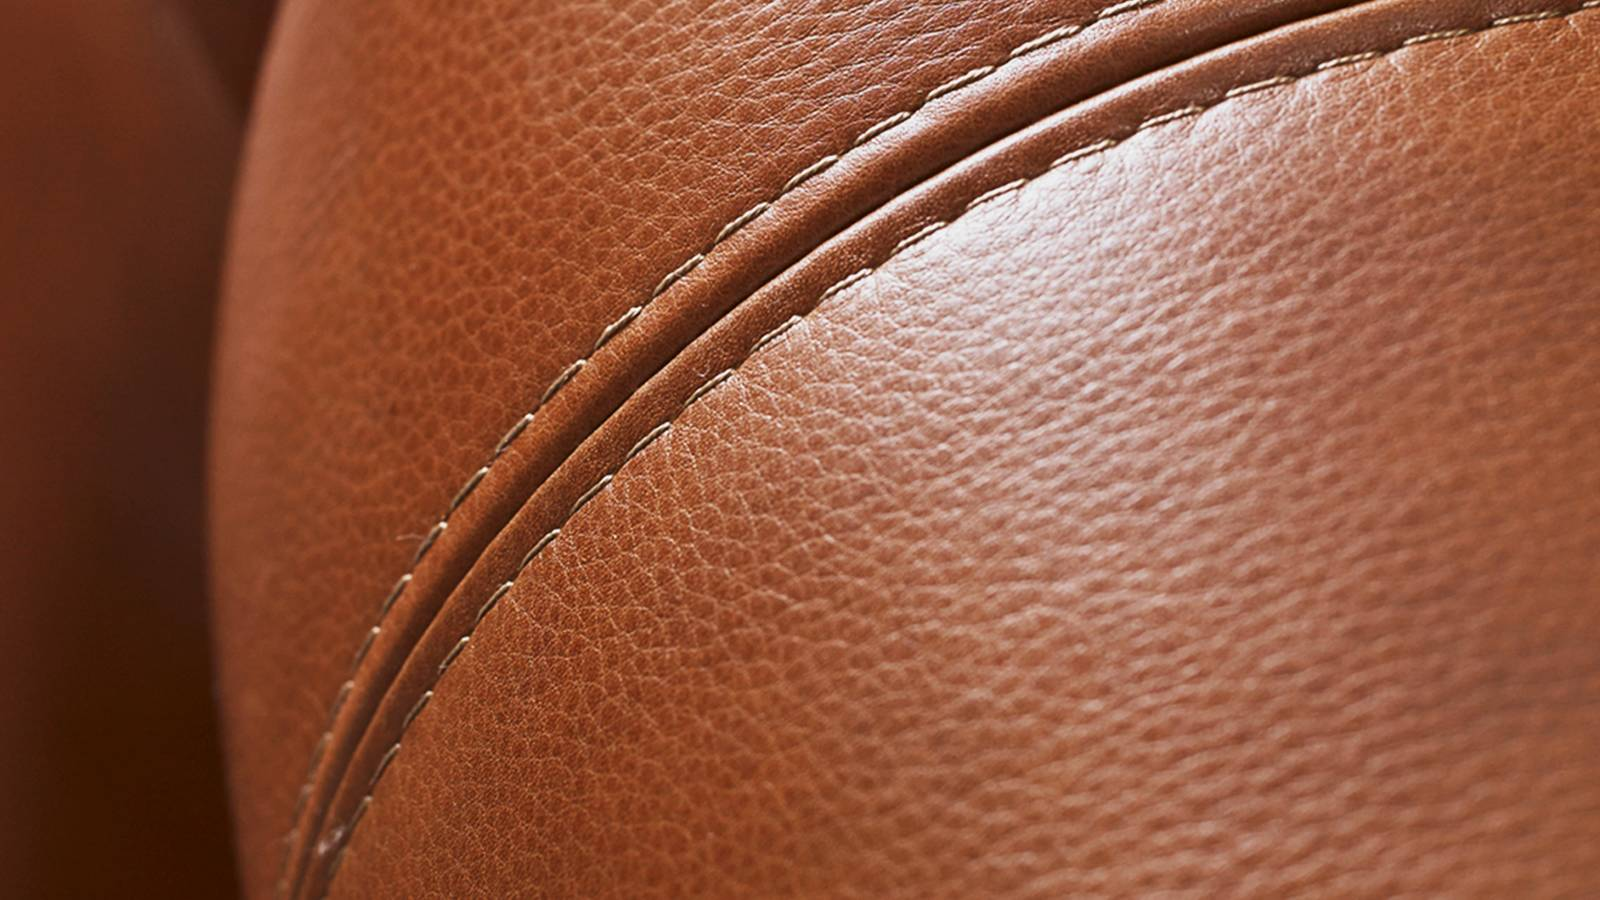 Closeup of stitching on light brown leather sofa